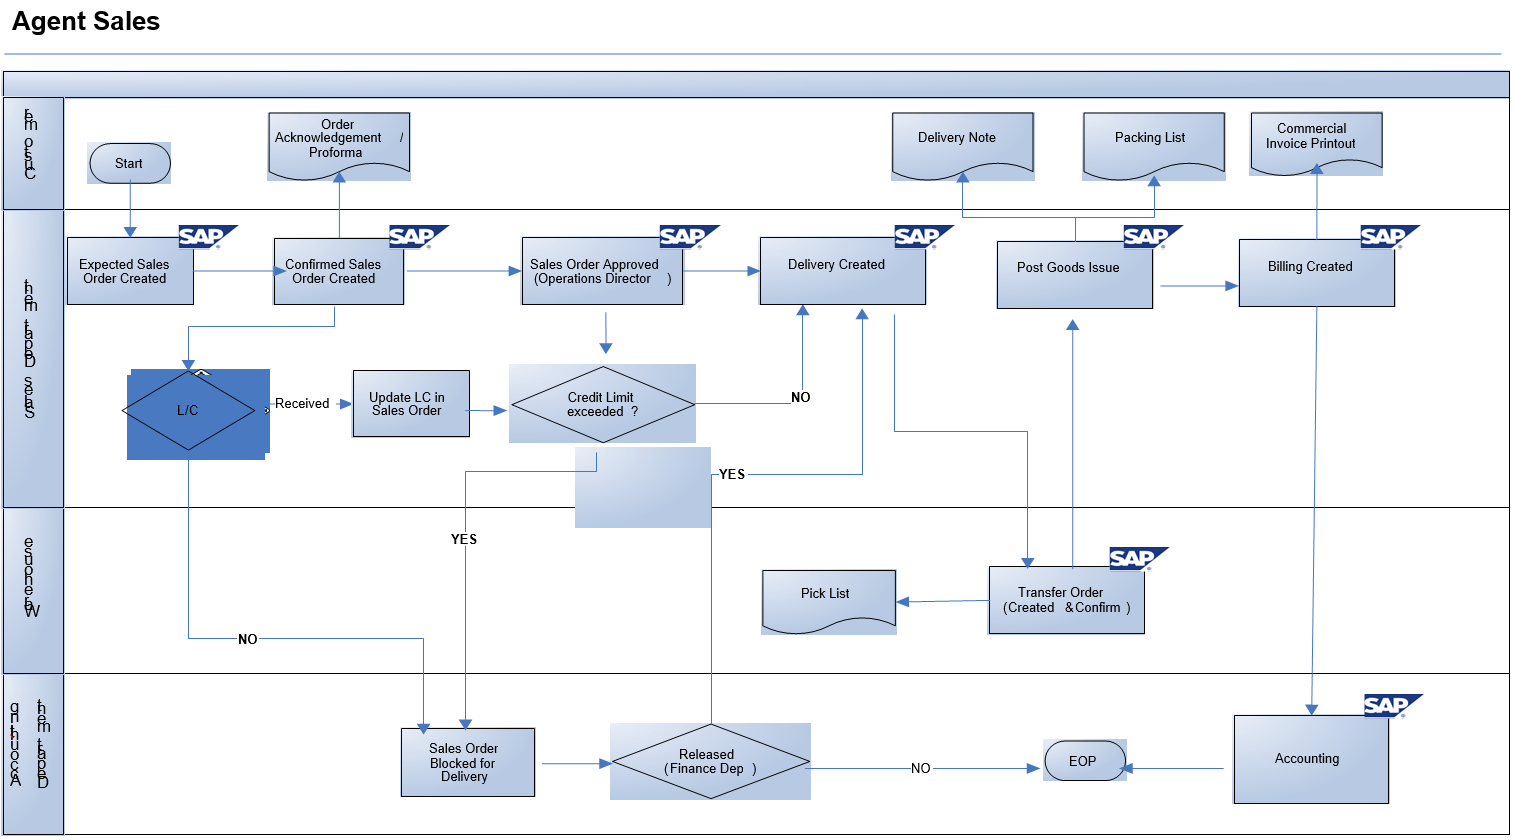 Sap sd business blueprint export sales process scenario and flow export sales process flow diagram in sap sd malvernweather Image collections